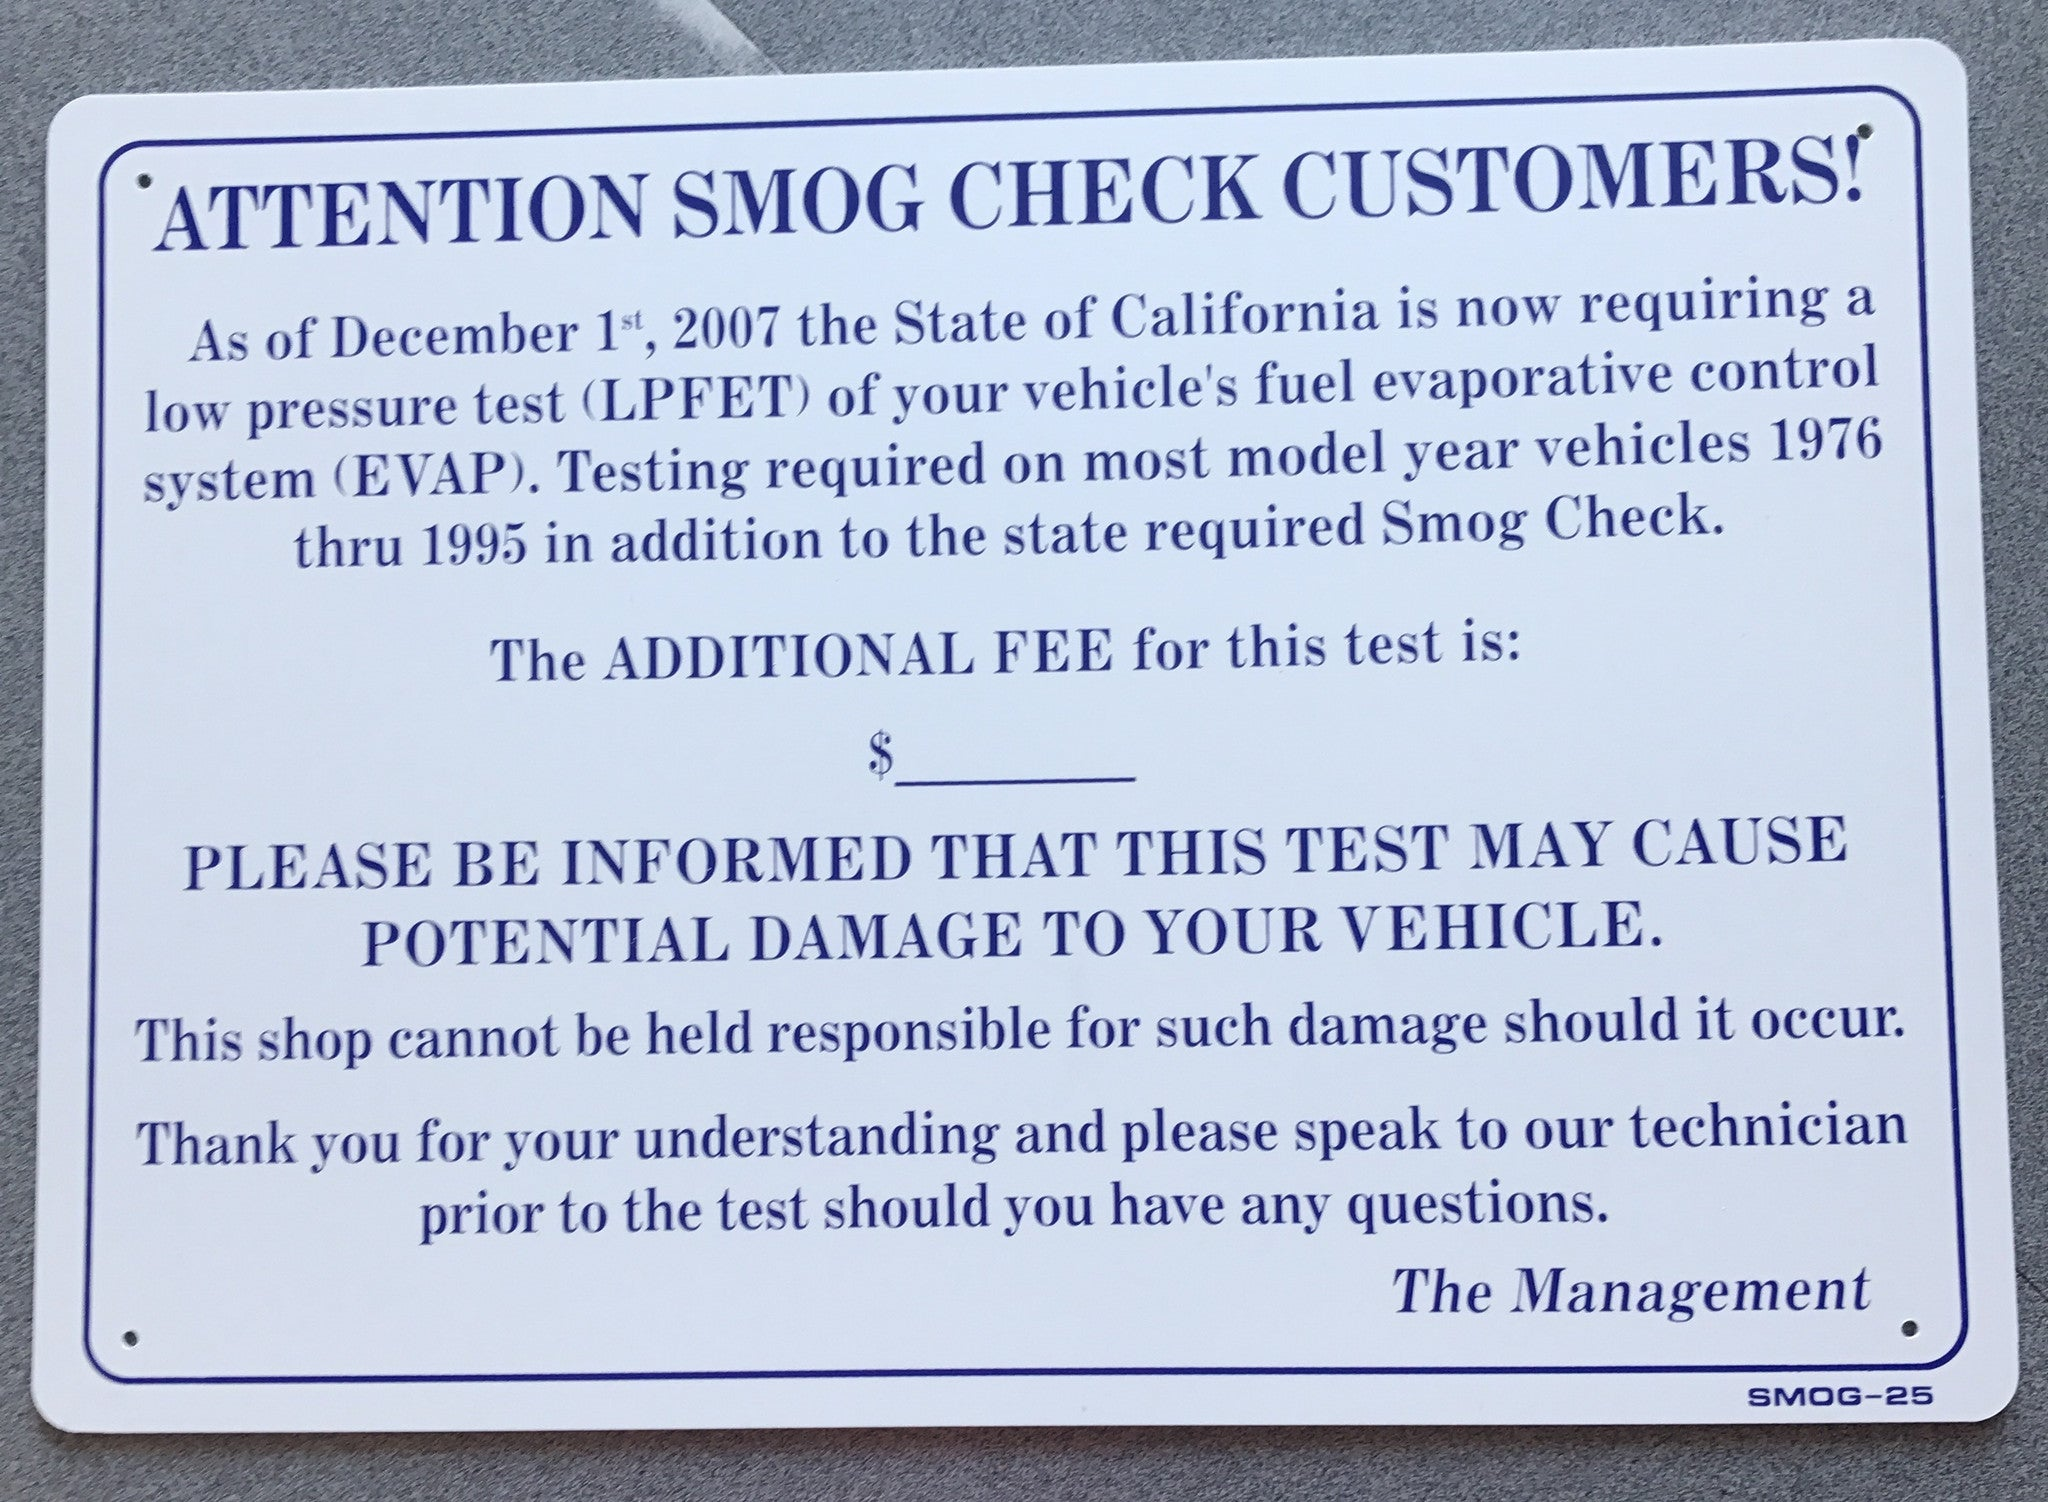 Evap Test Price Sign With Cost Damage Warning Smog 25